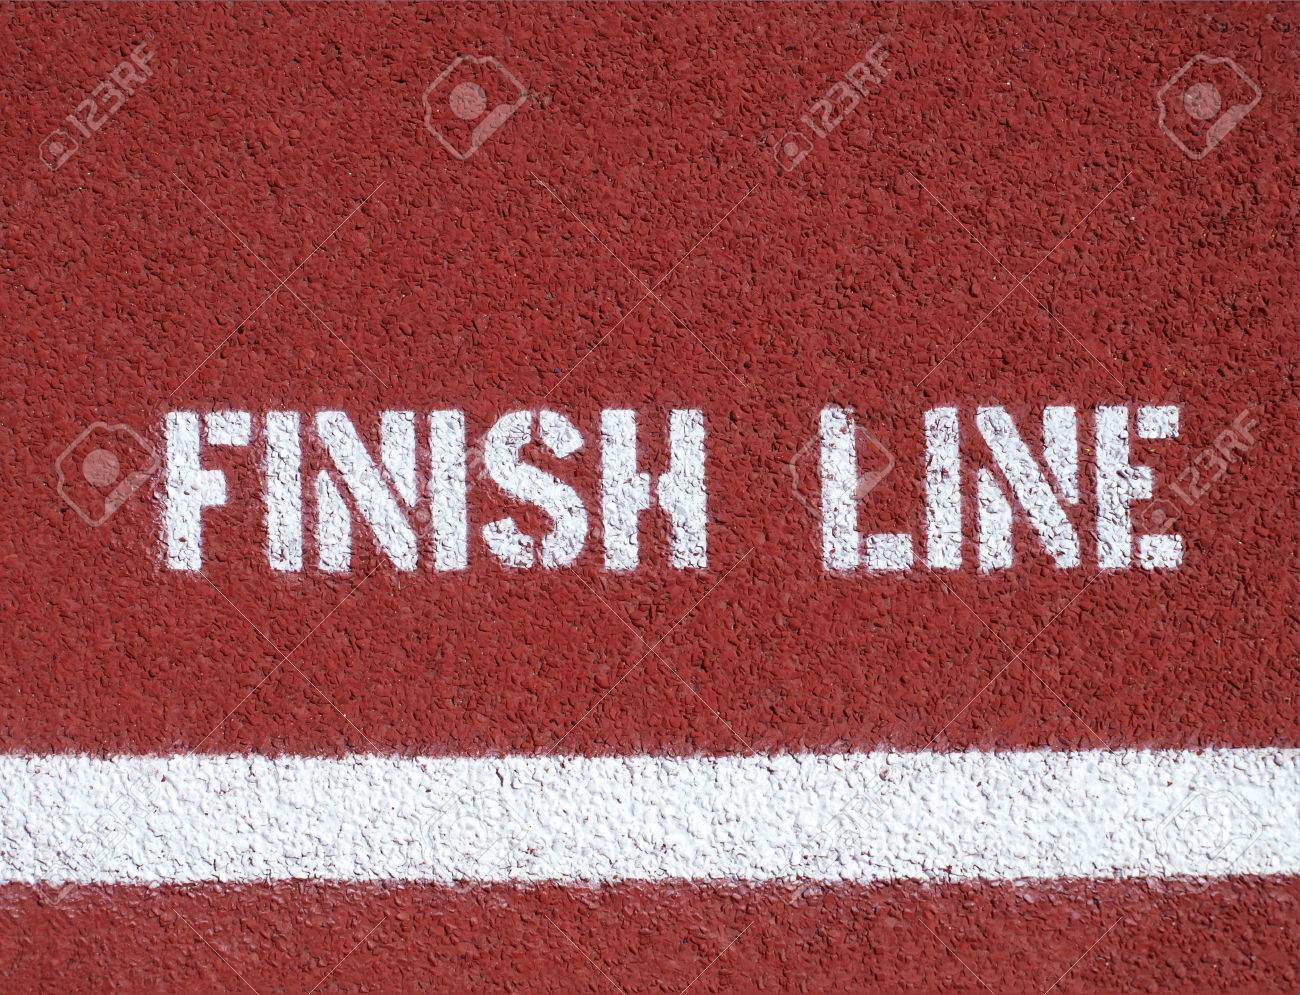 Finish line - sign on the running track Standard-Bild - 25159358